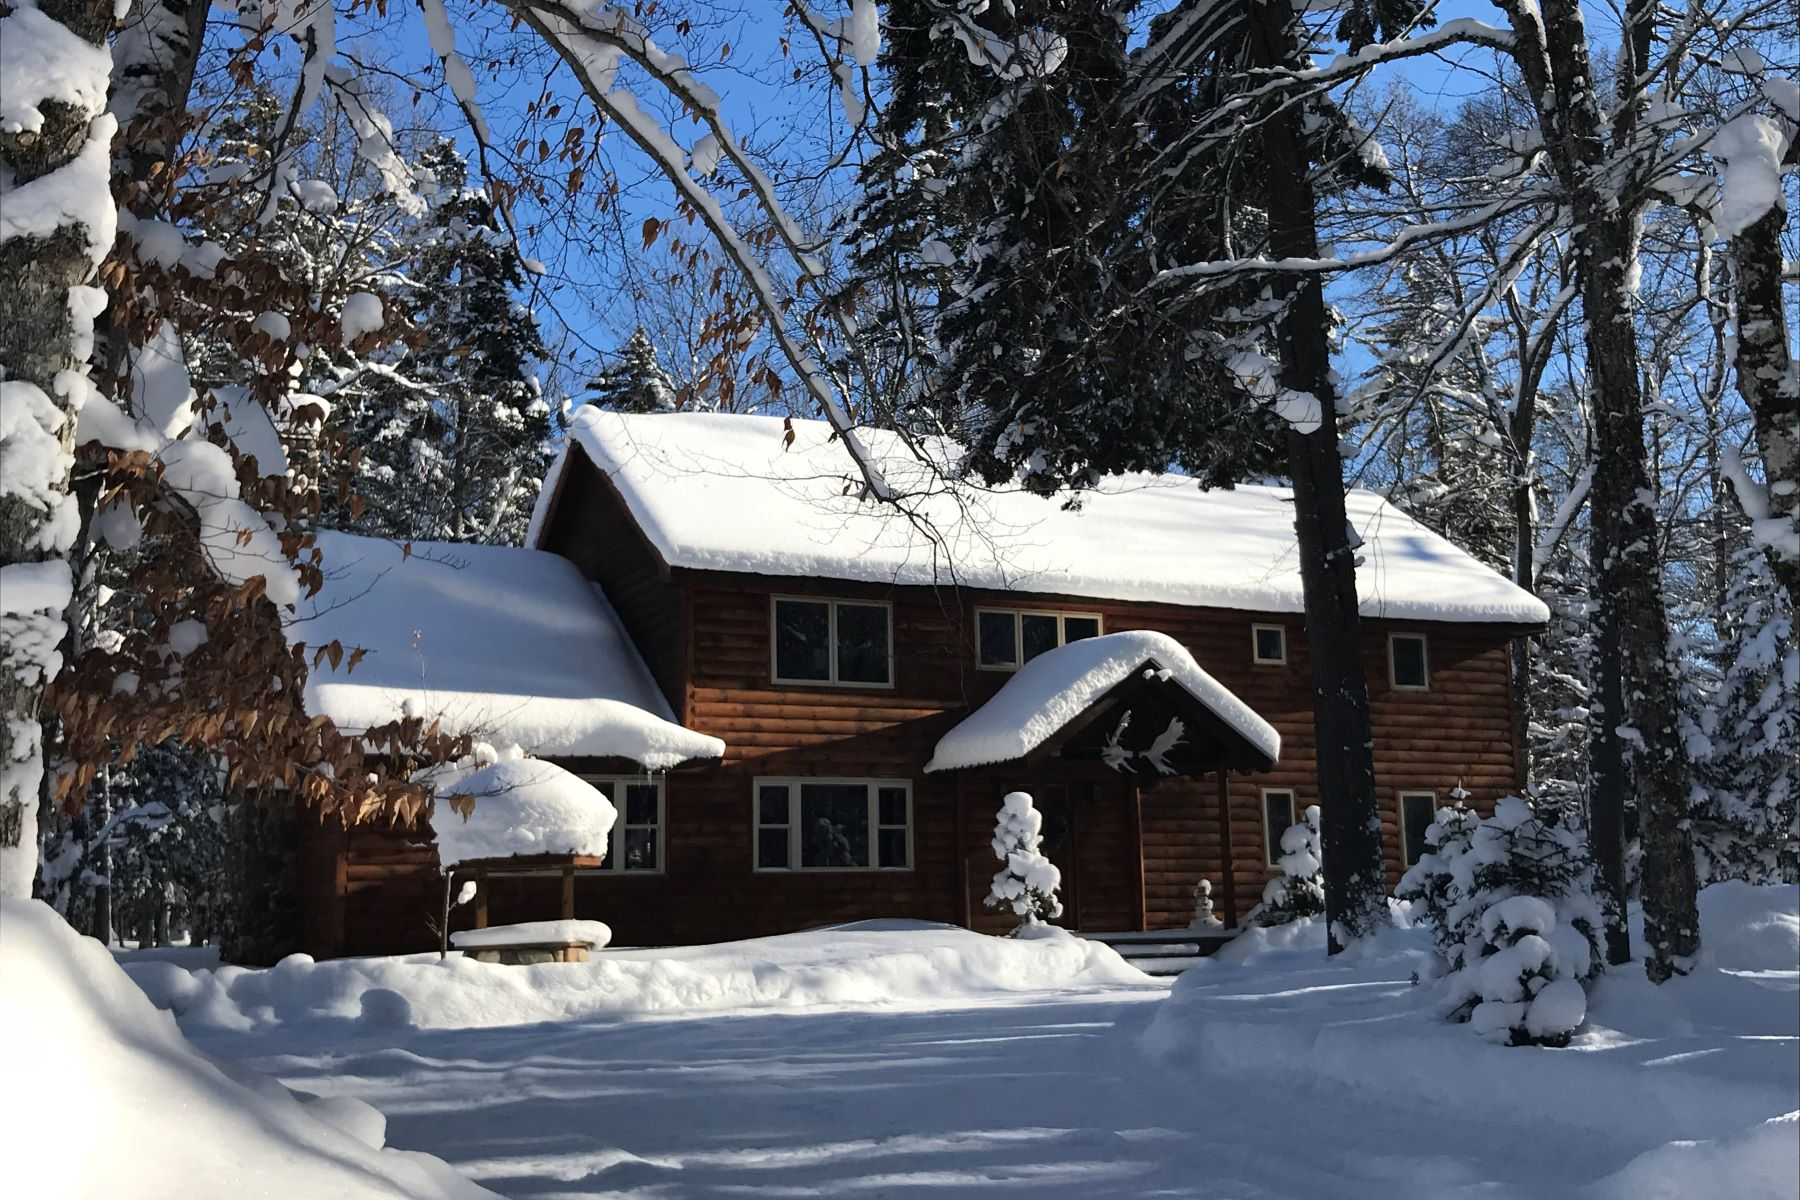 Single Family Home for Sale at Private Log Home Near Big Moose Lake 171 Darts Lake Road Big Moose, New York 13331 United States